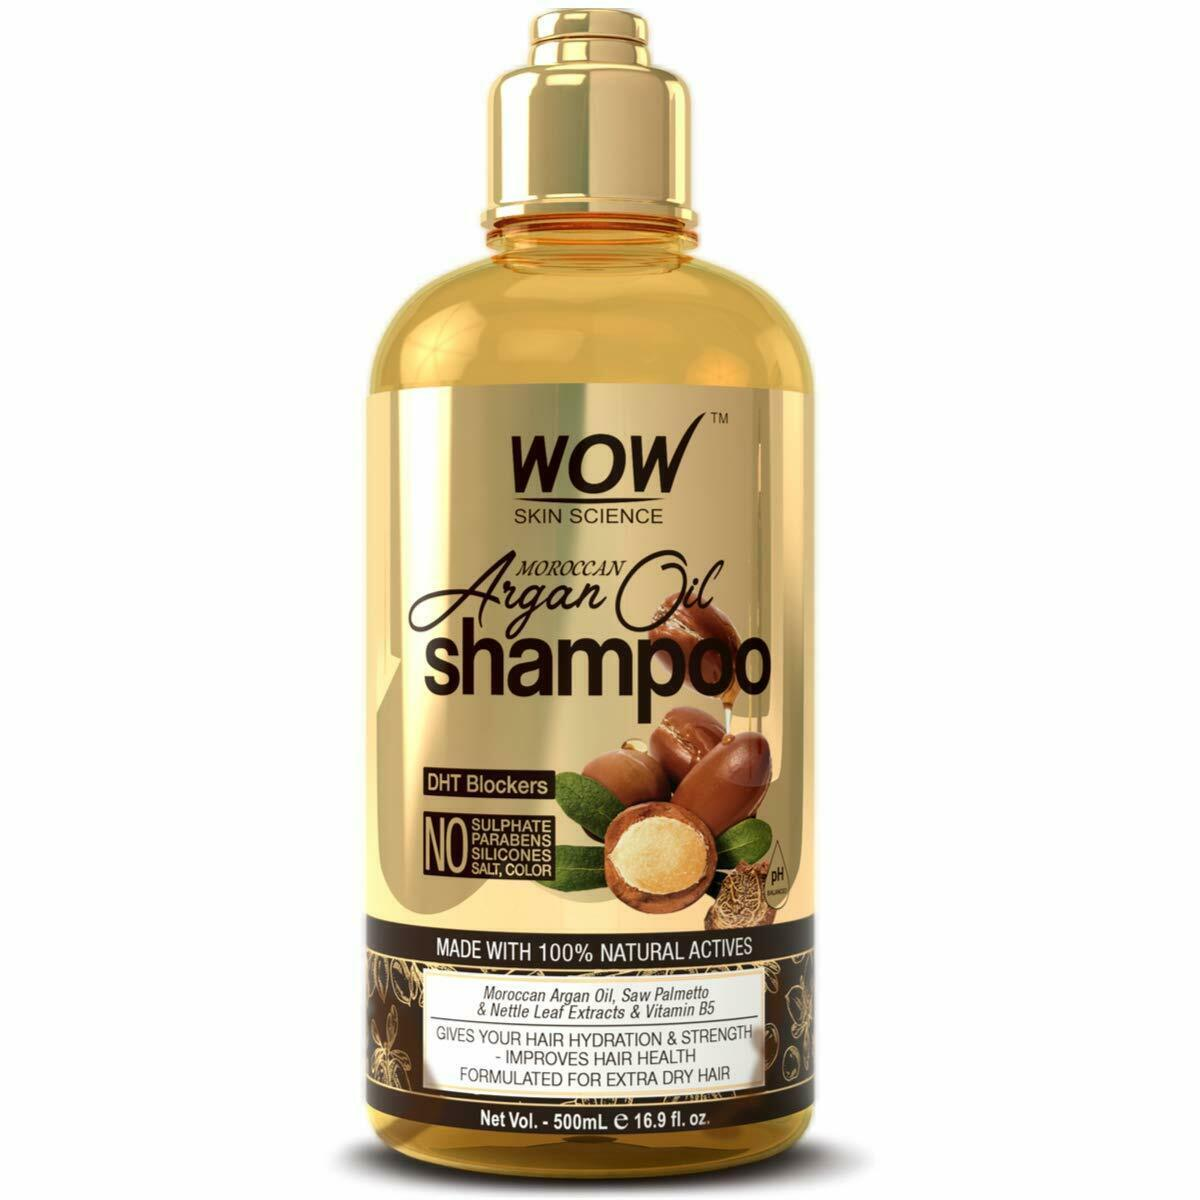 WOW Moroccan Argan Oil Shampoo With DHT Blockers - Boost Fast Hair Growth 500 ml - $18.99